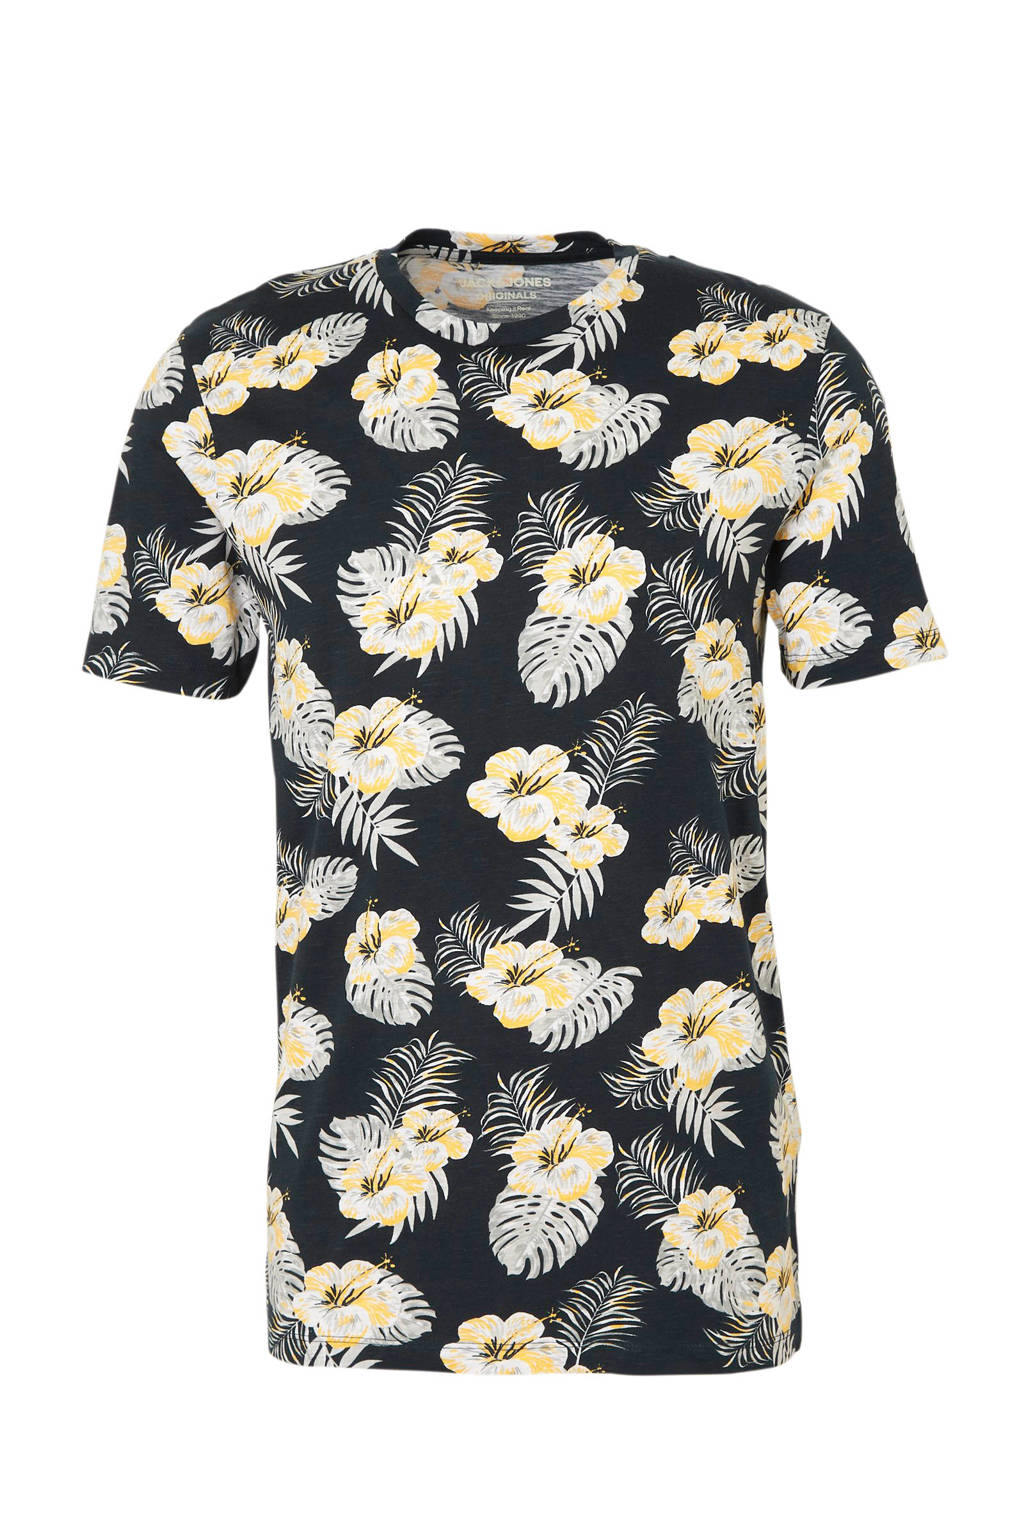 Jack & Jones Originals T-shirt met all over print, Donkerblauw